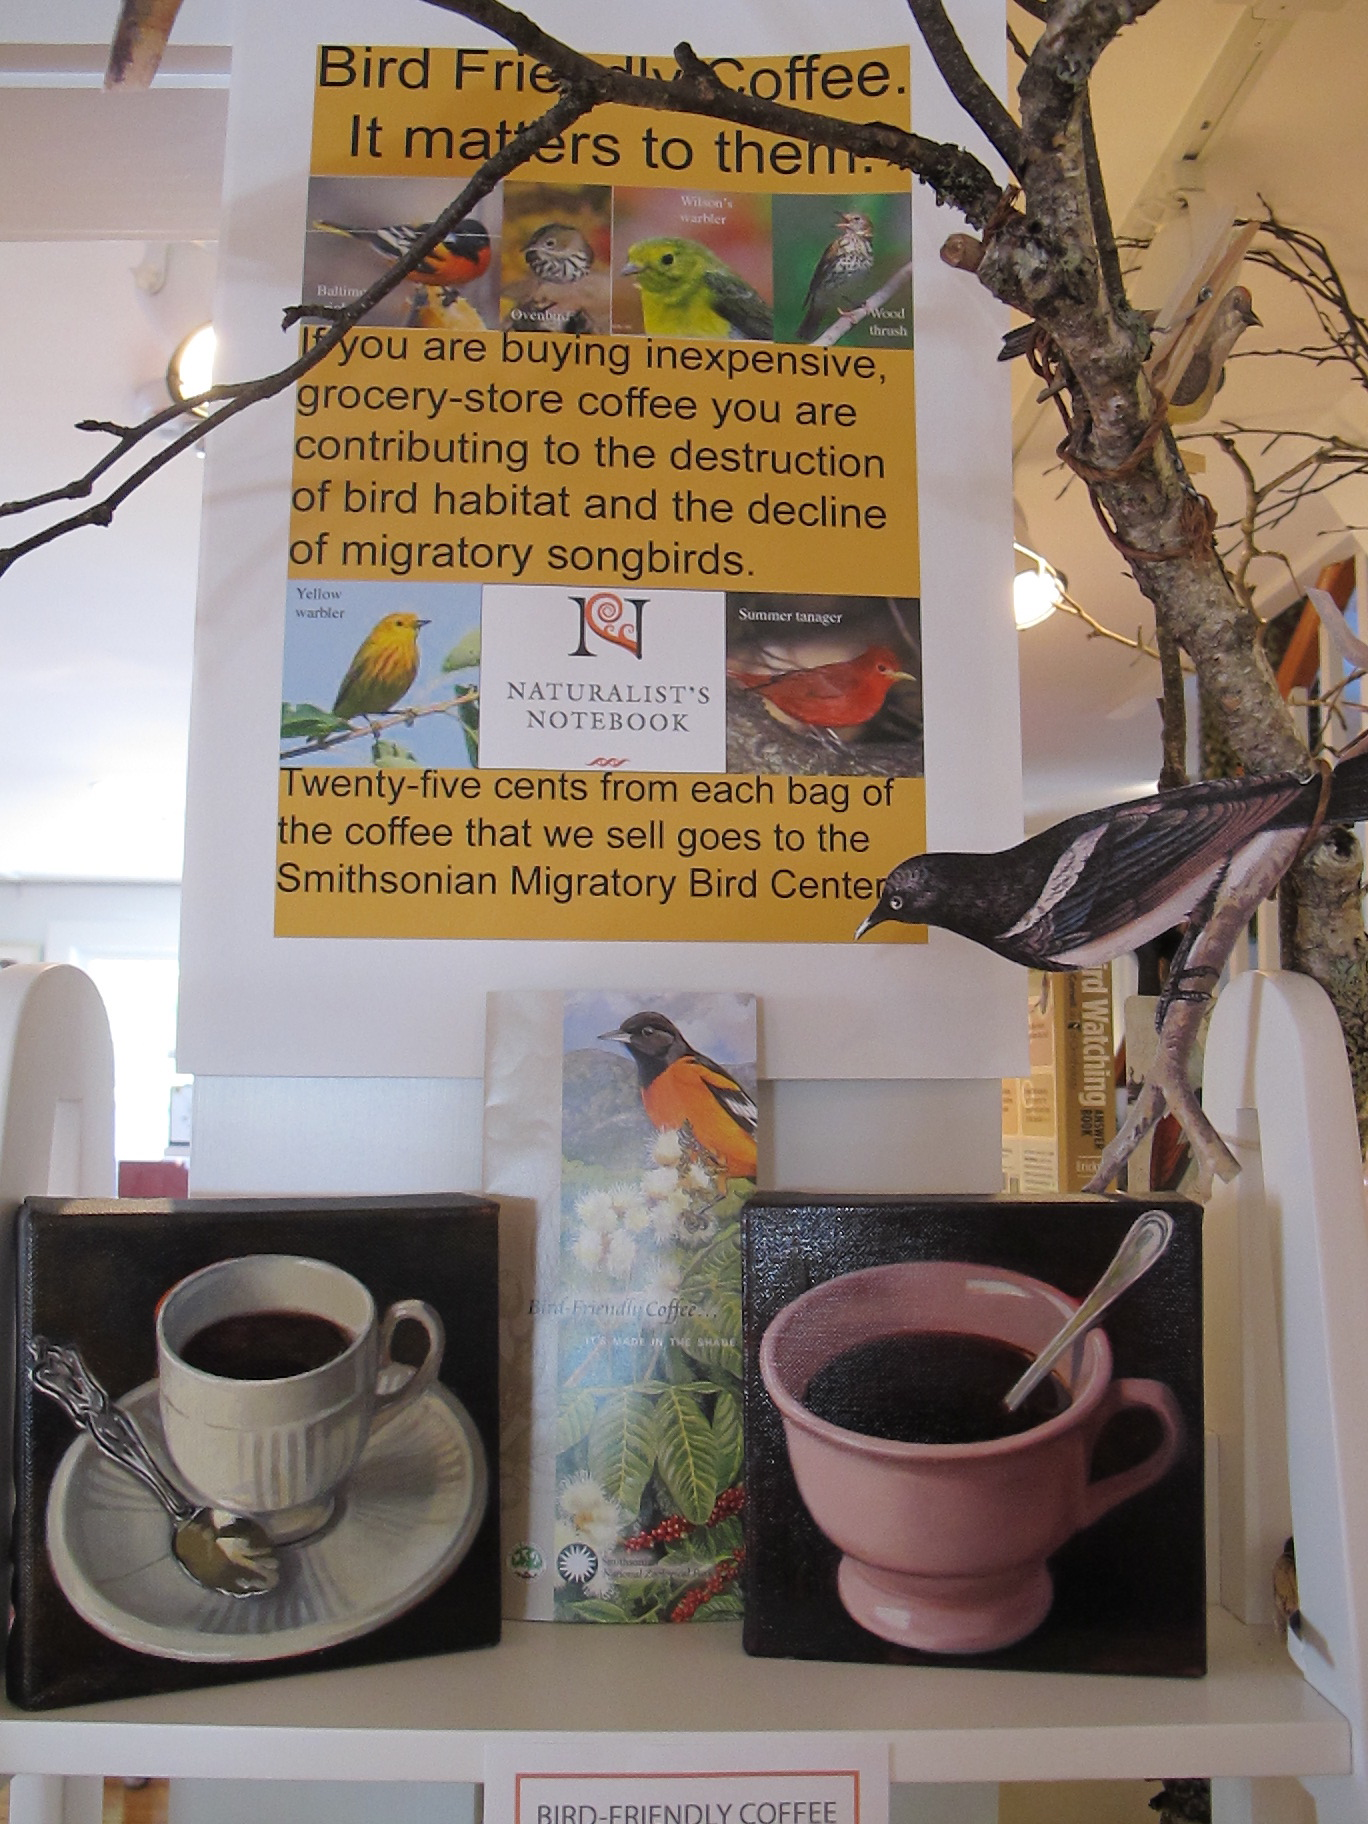 Part of last year's Naturalist's Notebook display on the importance of drinking shade-grown, bird-friendly coffee.